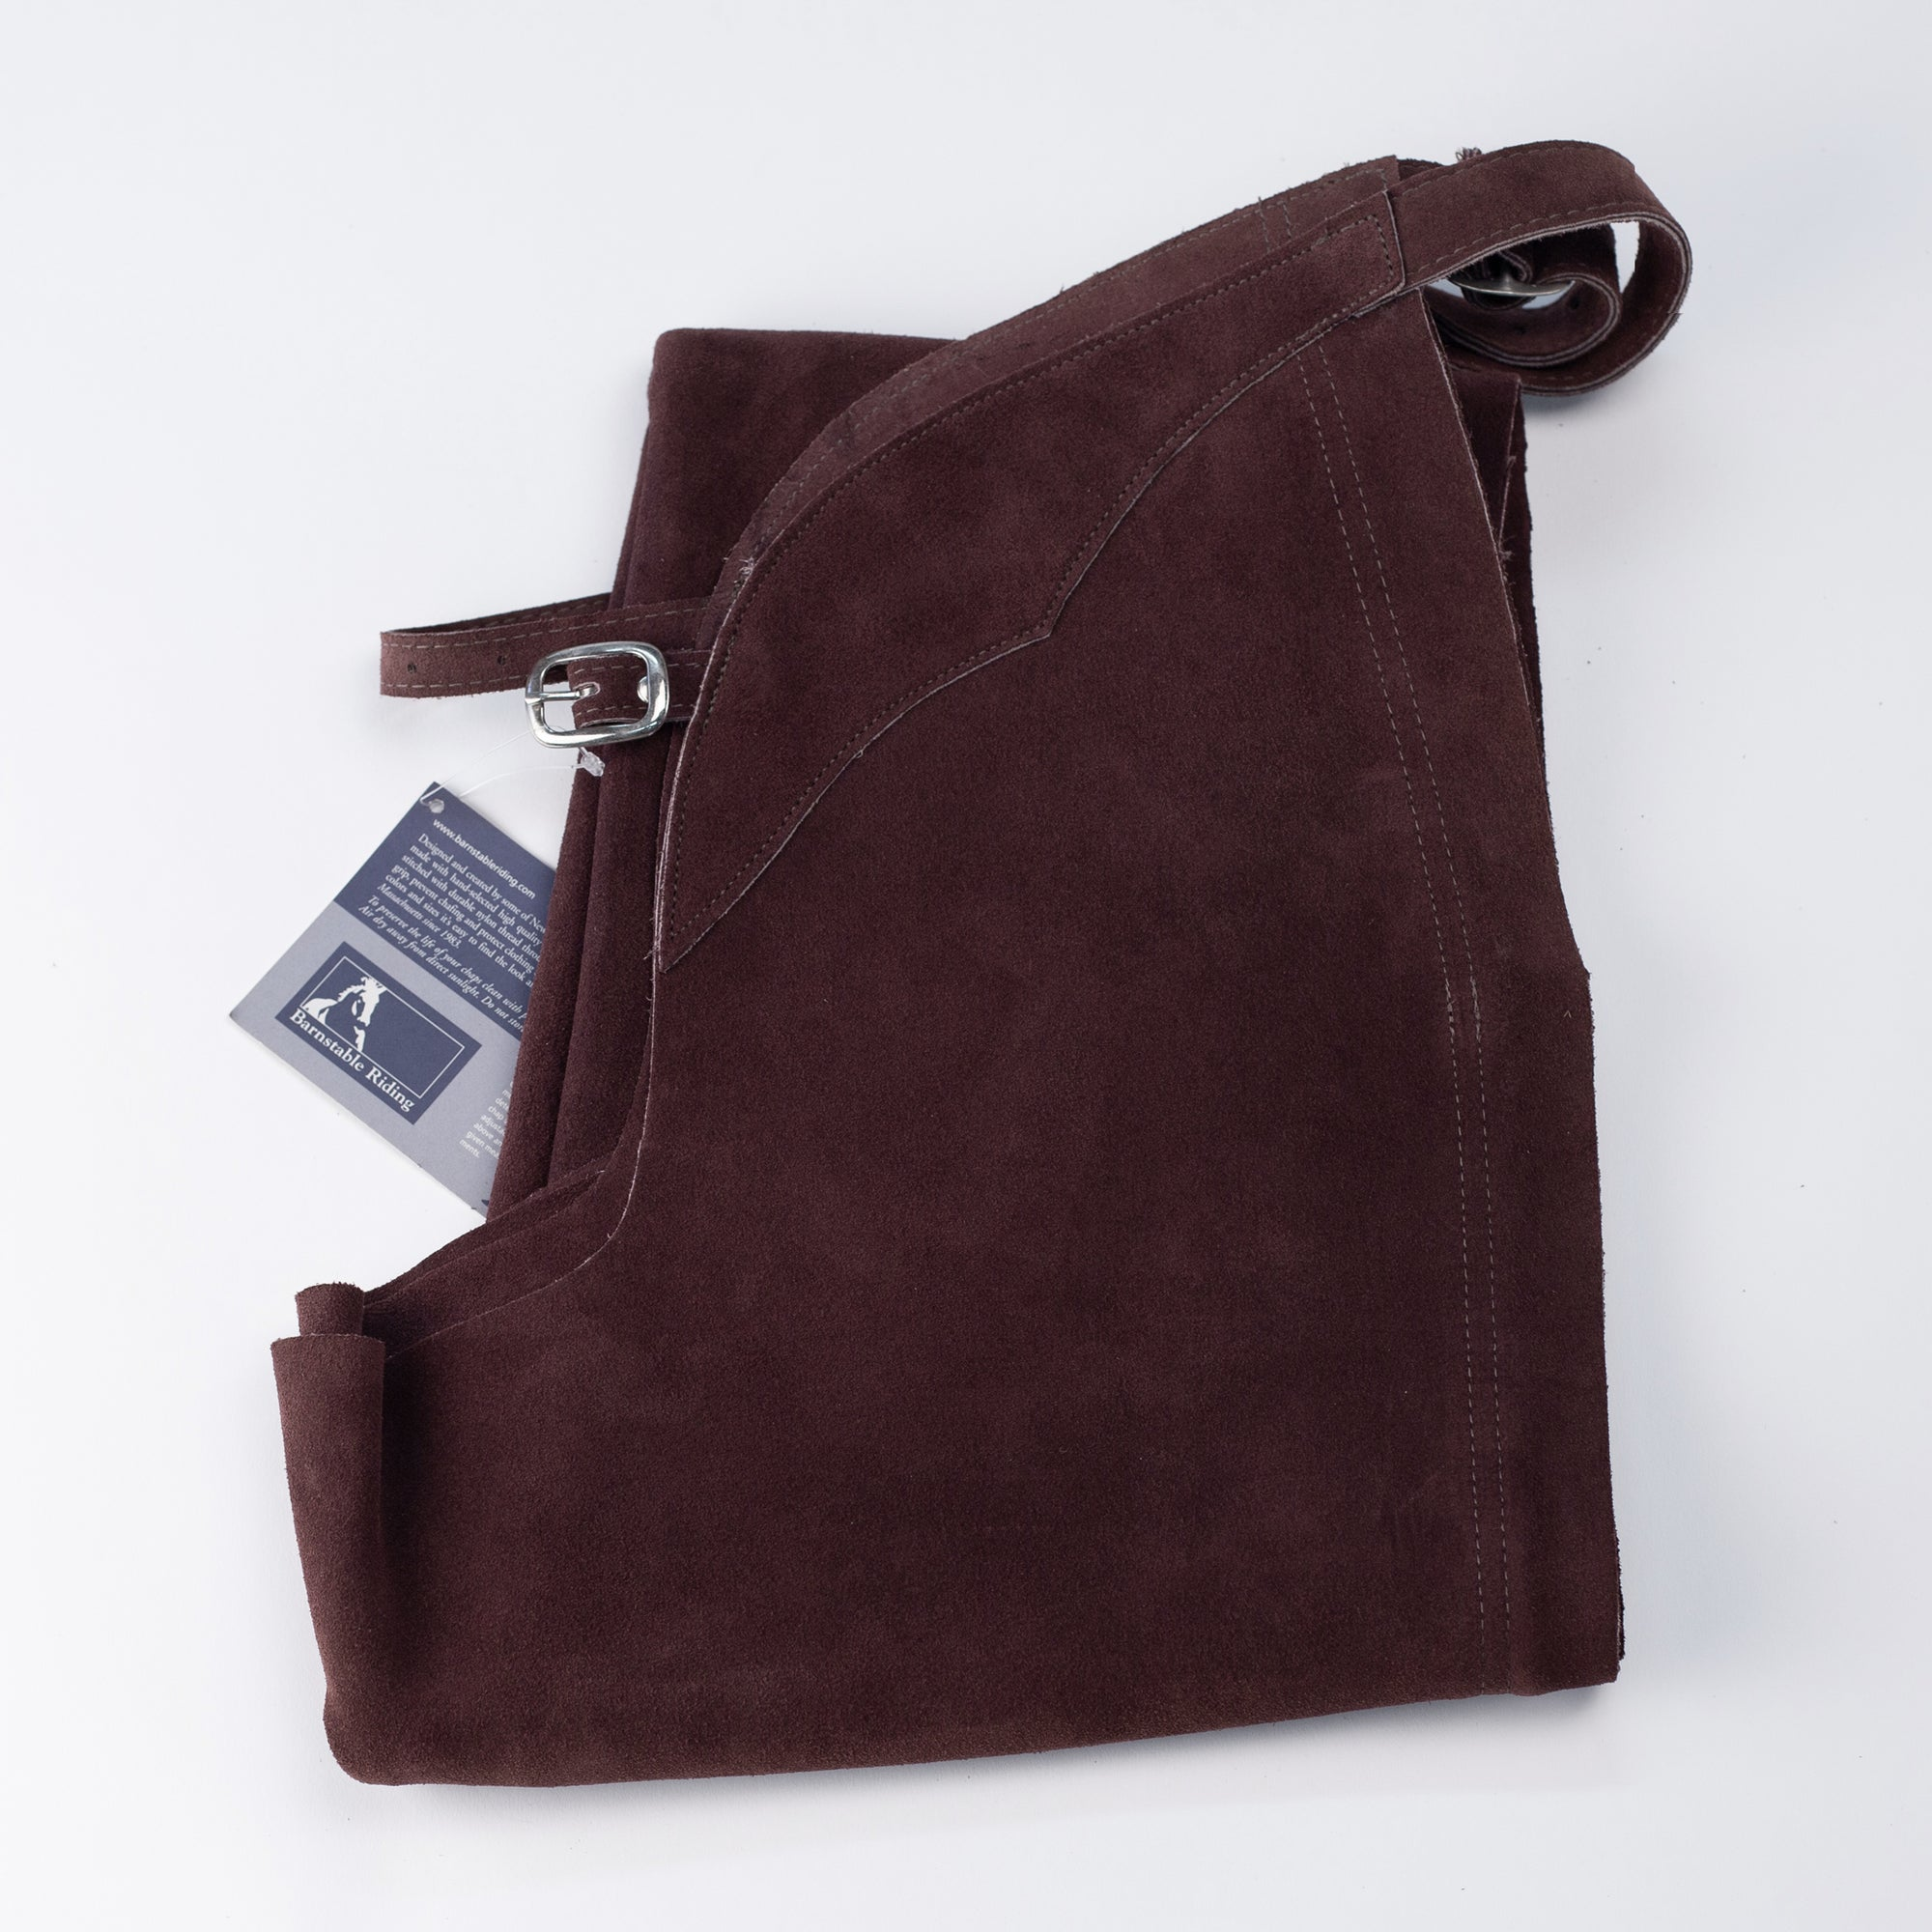 English Schooling Chaps - Burgundy Suede